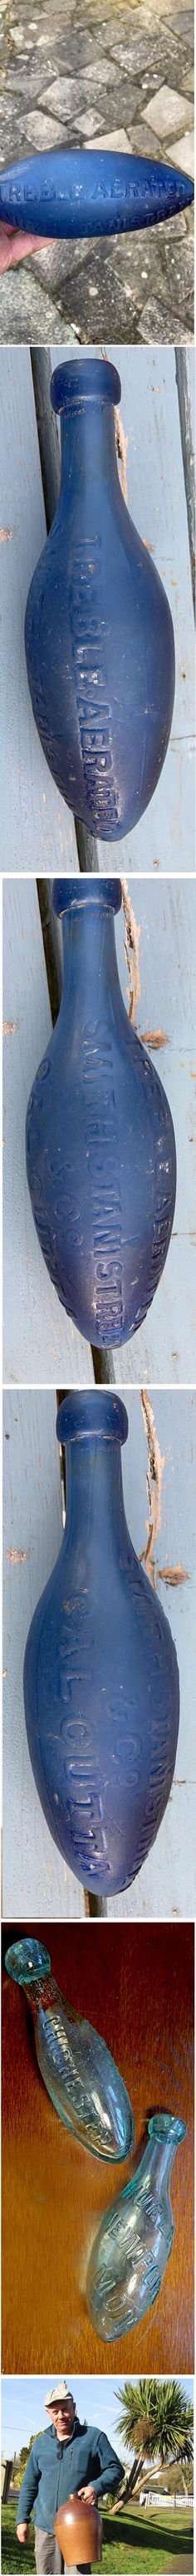 tx for sharing Rusty Anddusty, Old Bottles, Rising Star : WARNING: You may temporarily lose control of your bodily functions when you see this bottle 😲😲😲😲 BLUE 1880/90s Hamilton patent. SMITHTANISTREET & CO • CALCUTTA • TREBLE AERATED Recently recovered from the bottom of the North Sea by the Captain of a dragnet trawler. It will eventually be for sale, but i'll need drool time with it, and any potential suitor will need deep pockets...... 😋😋😋